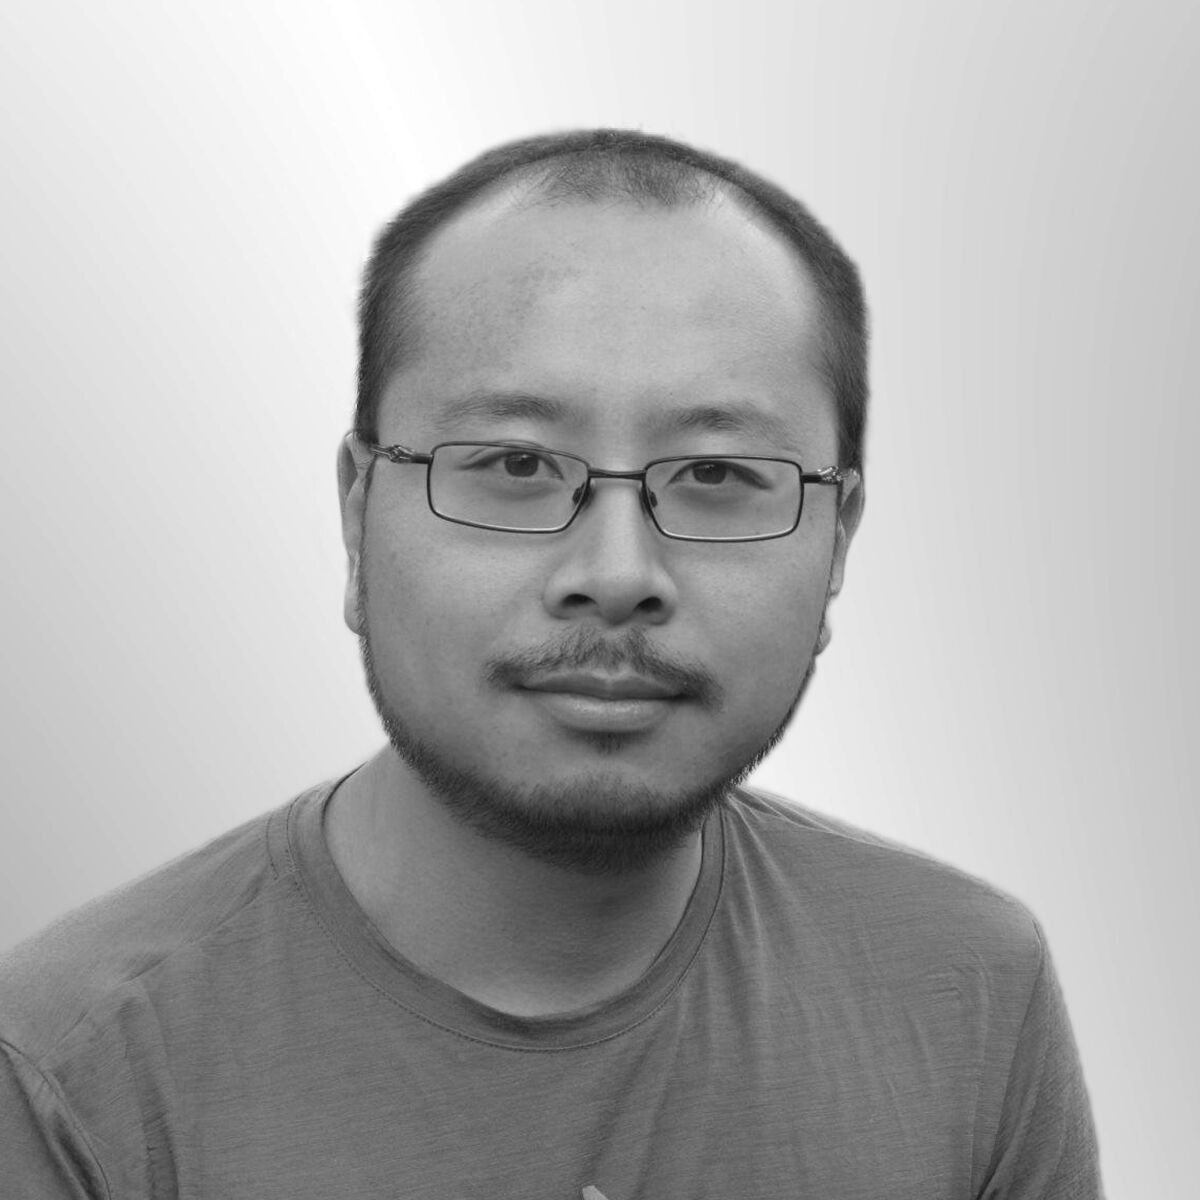 A picture of Keith Ng